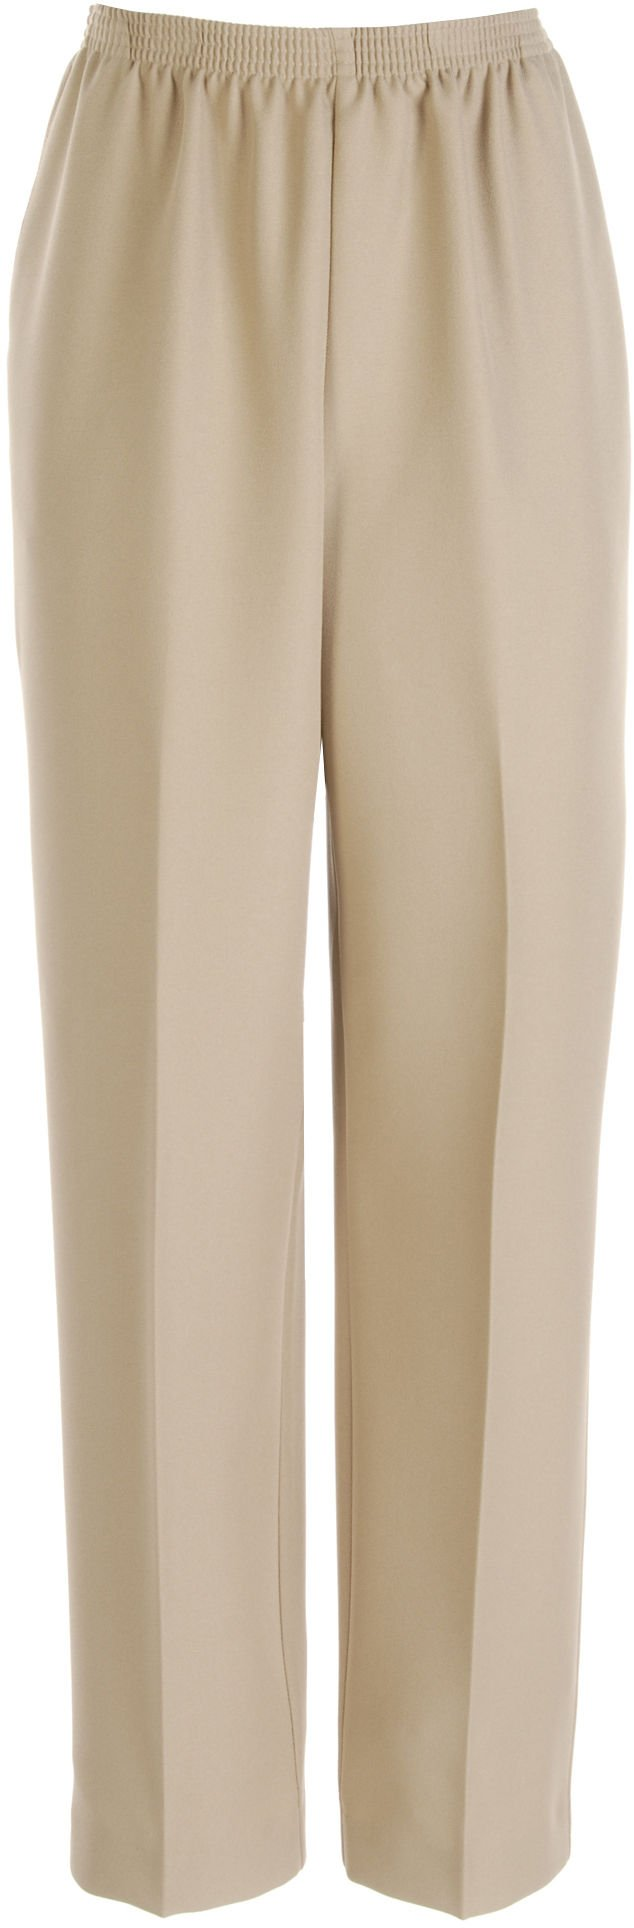 Alfred Dunner Women's Polyester Pull-On Pants - Medium Length, Tan, 14 by Alfred Dunner